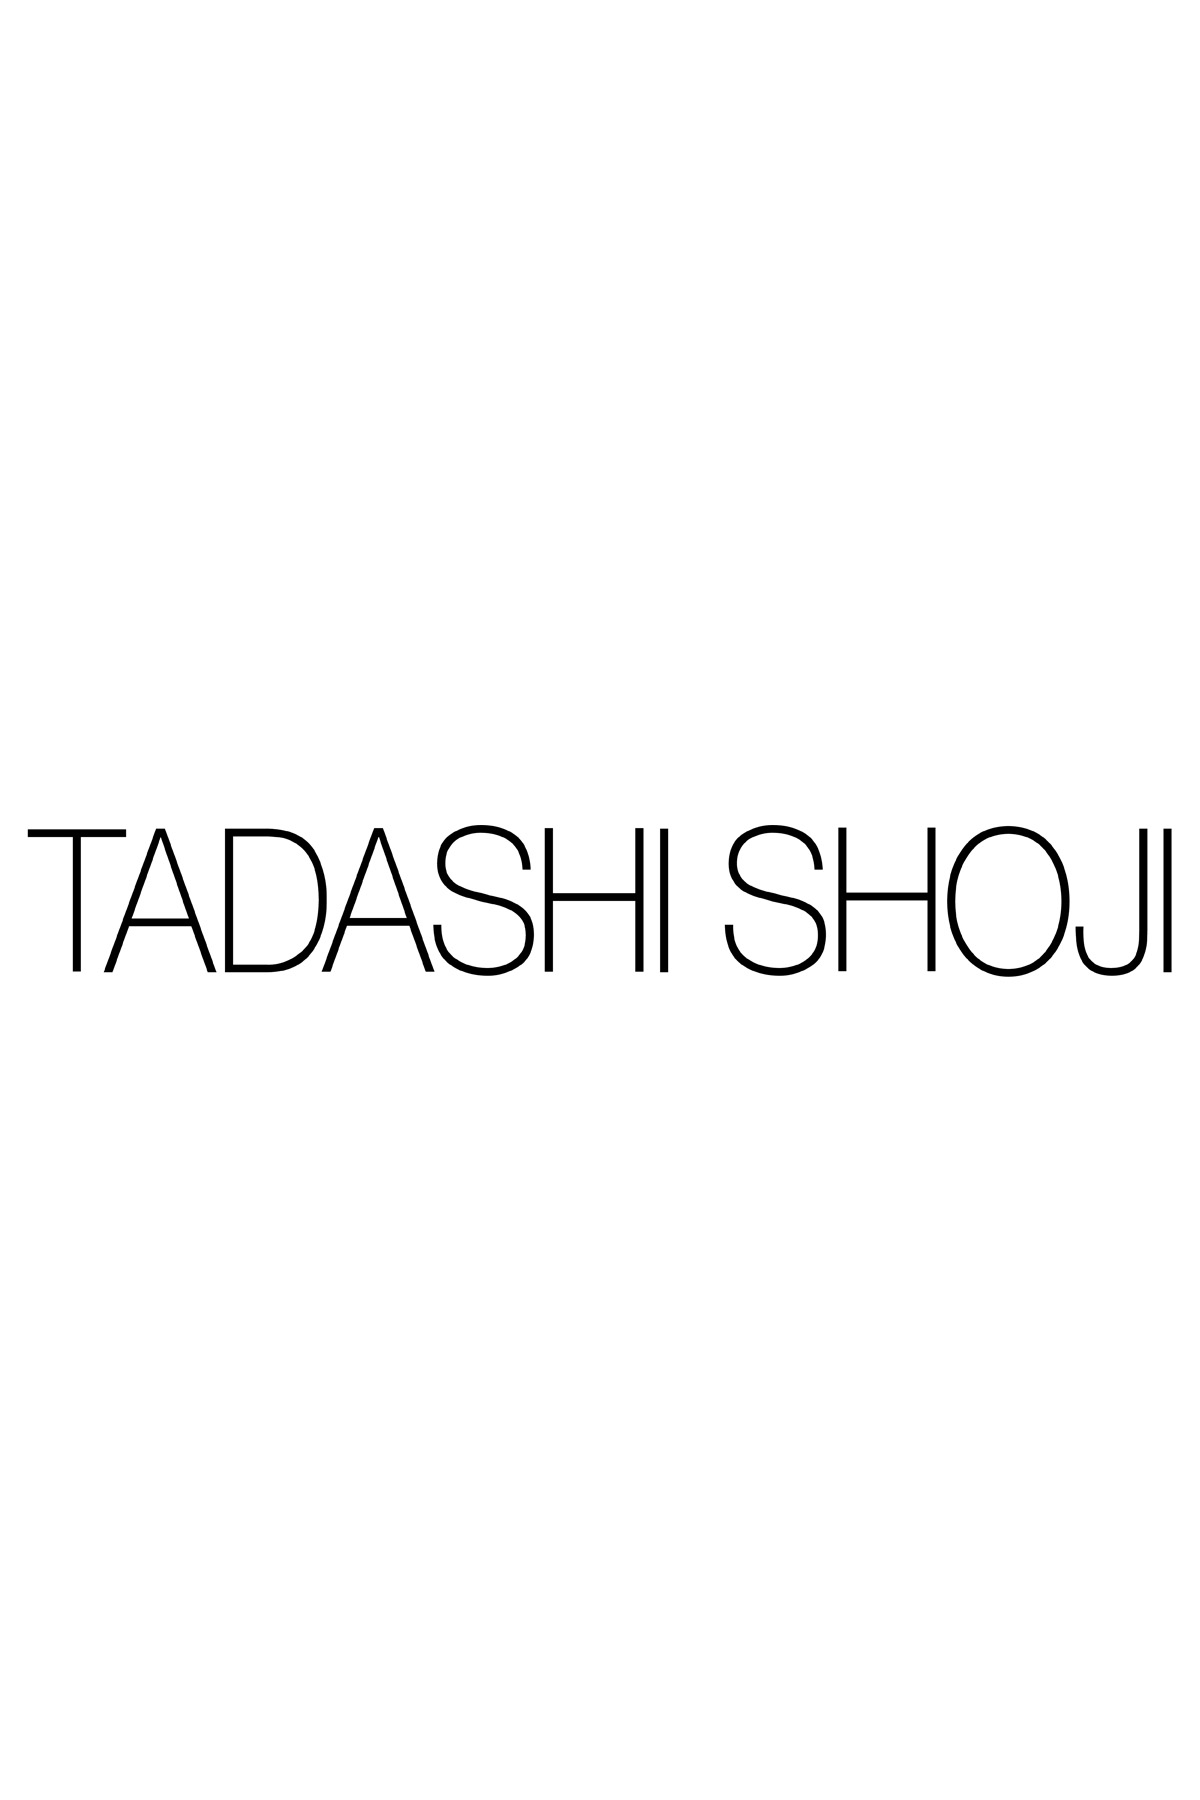 Tadashi Shoji - Corded Embroidery on Tulle Cap Sleeve Dress - Detail